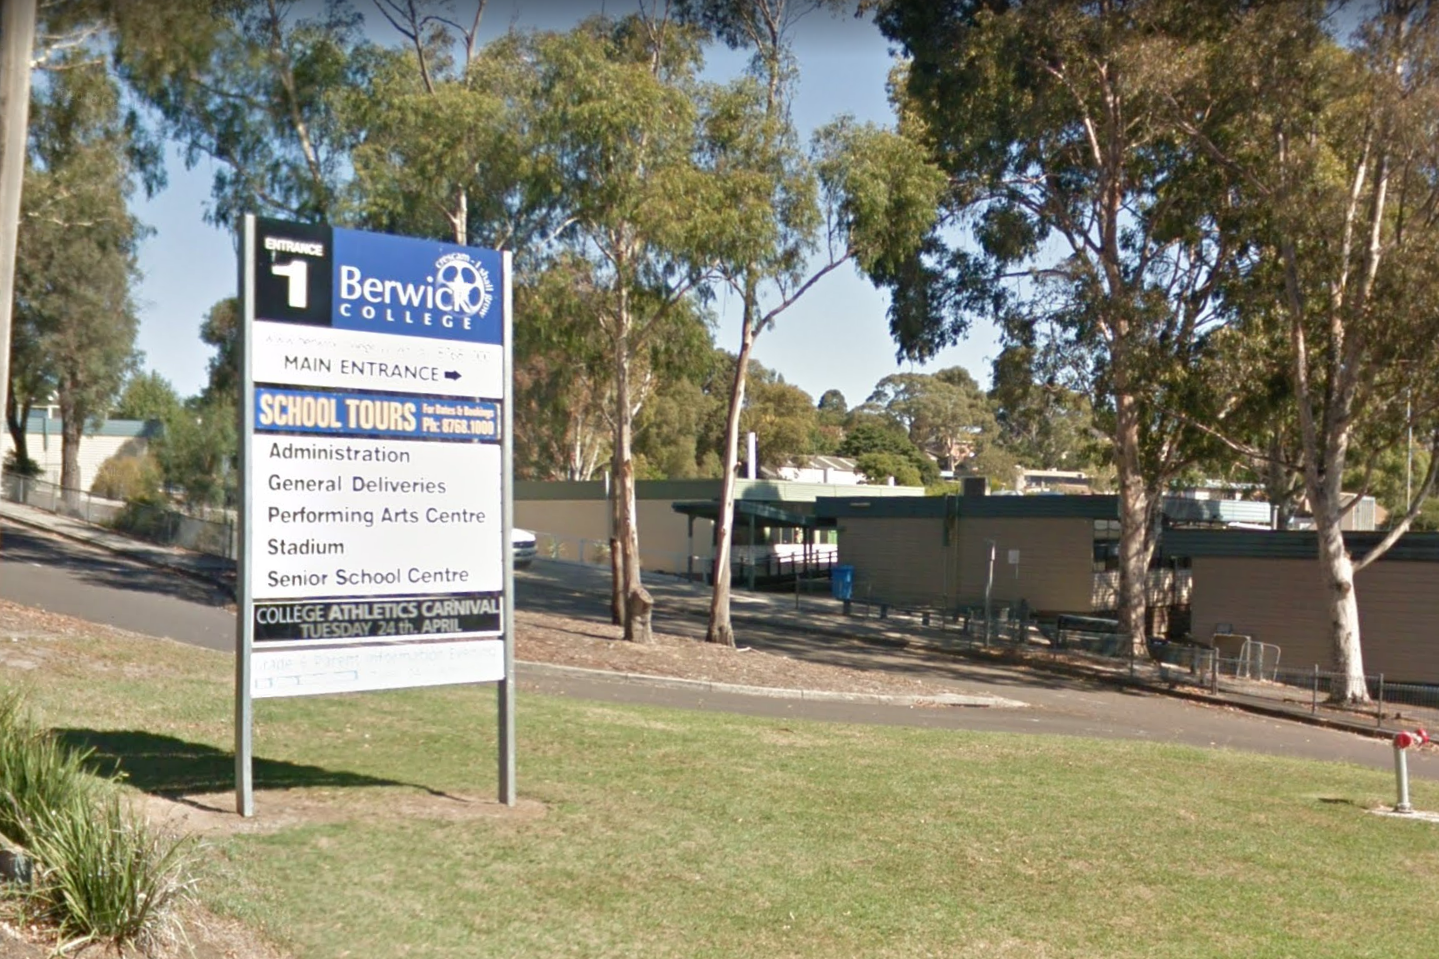 Article image for 'There were about 40 kids involved': Huge brawl forces Berwick school into lockdown, teacher attacked